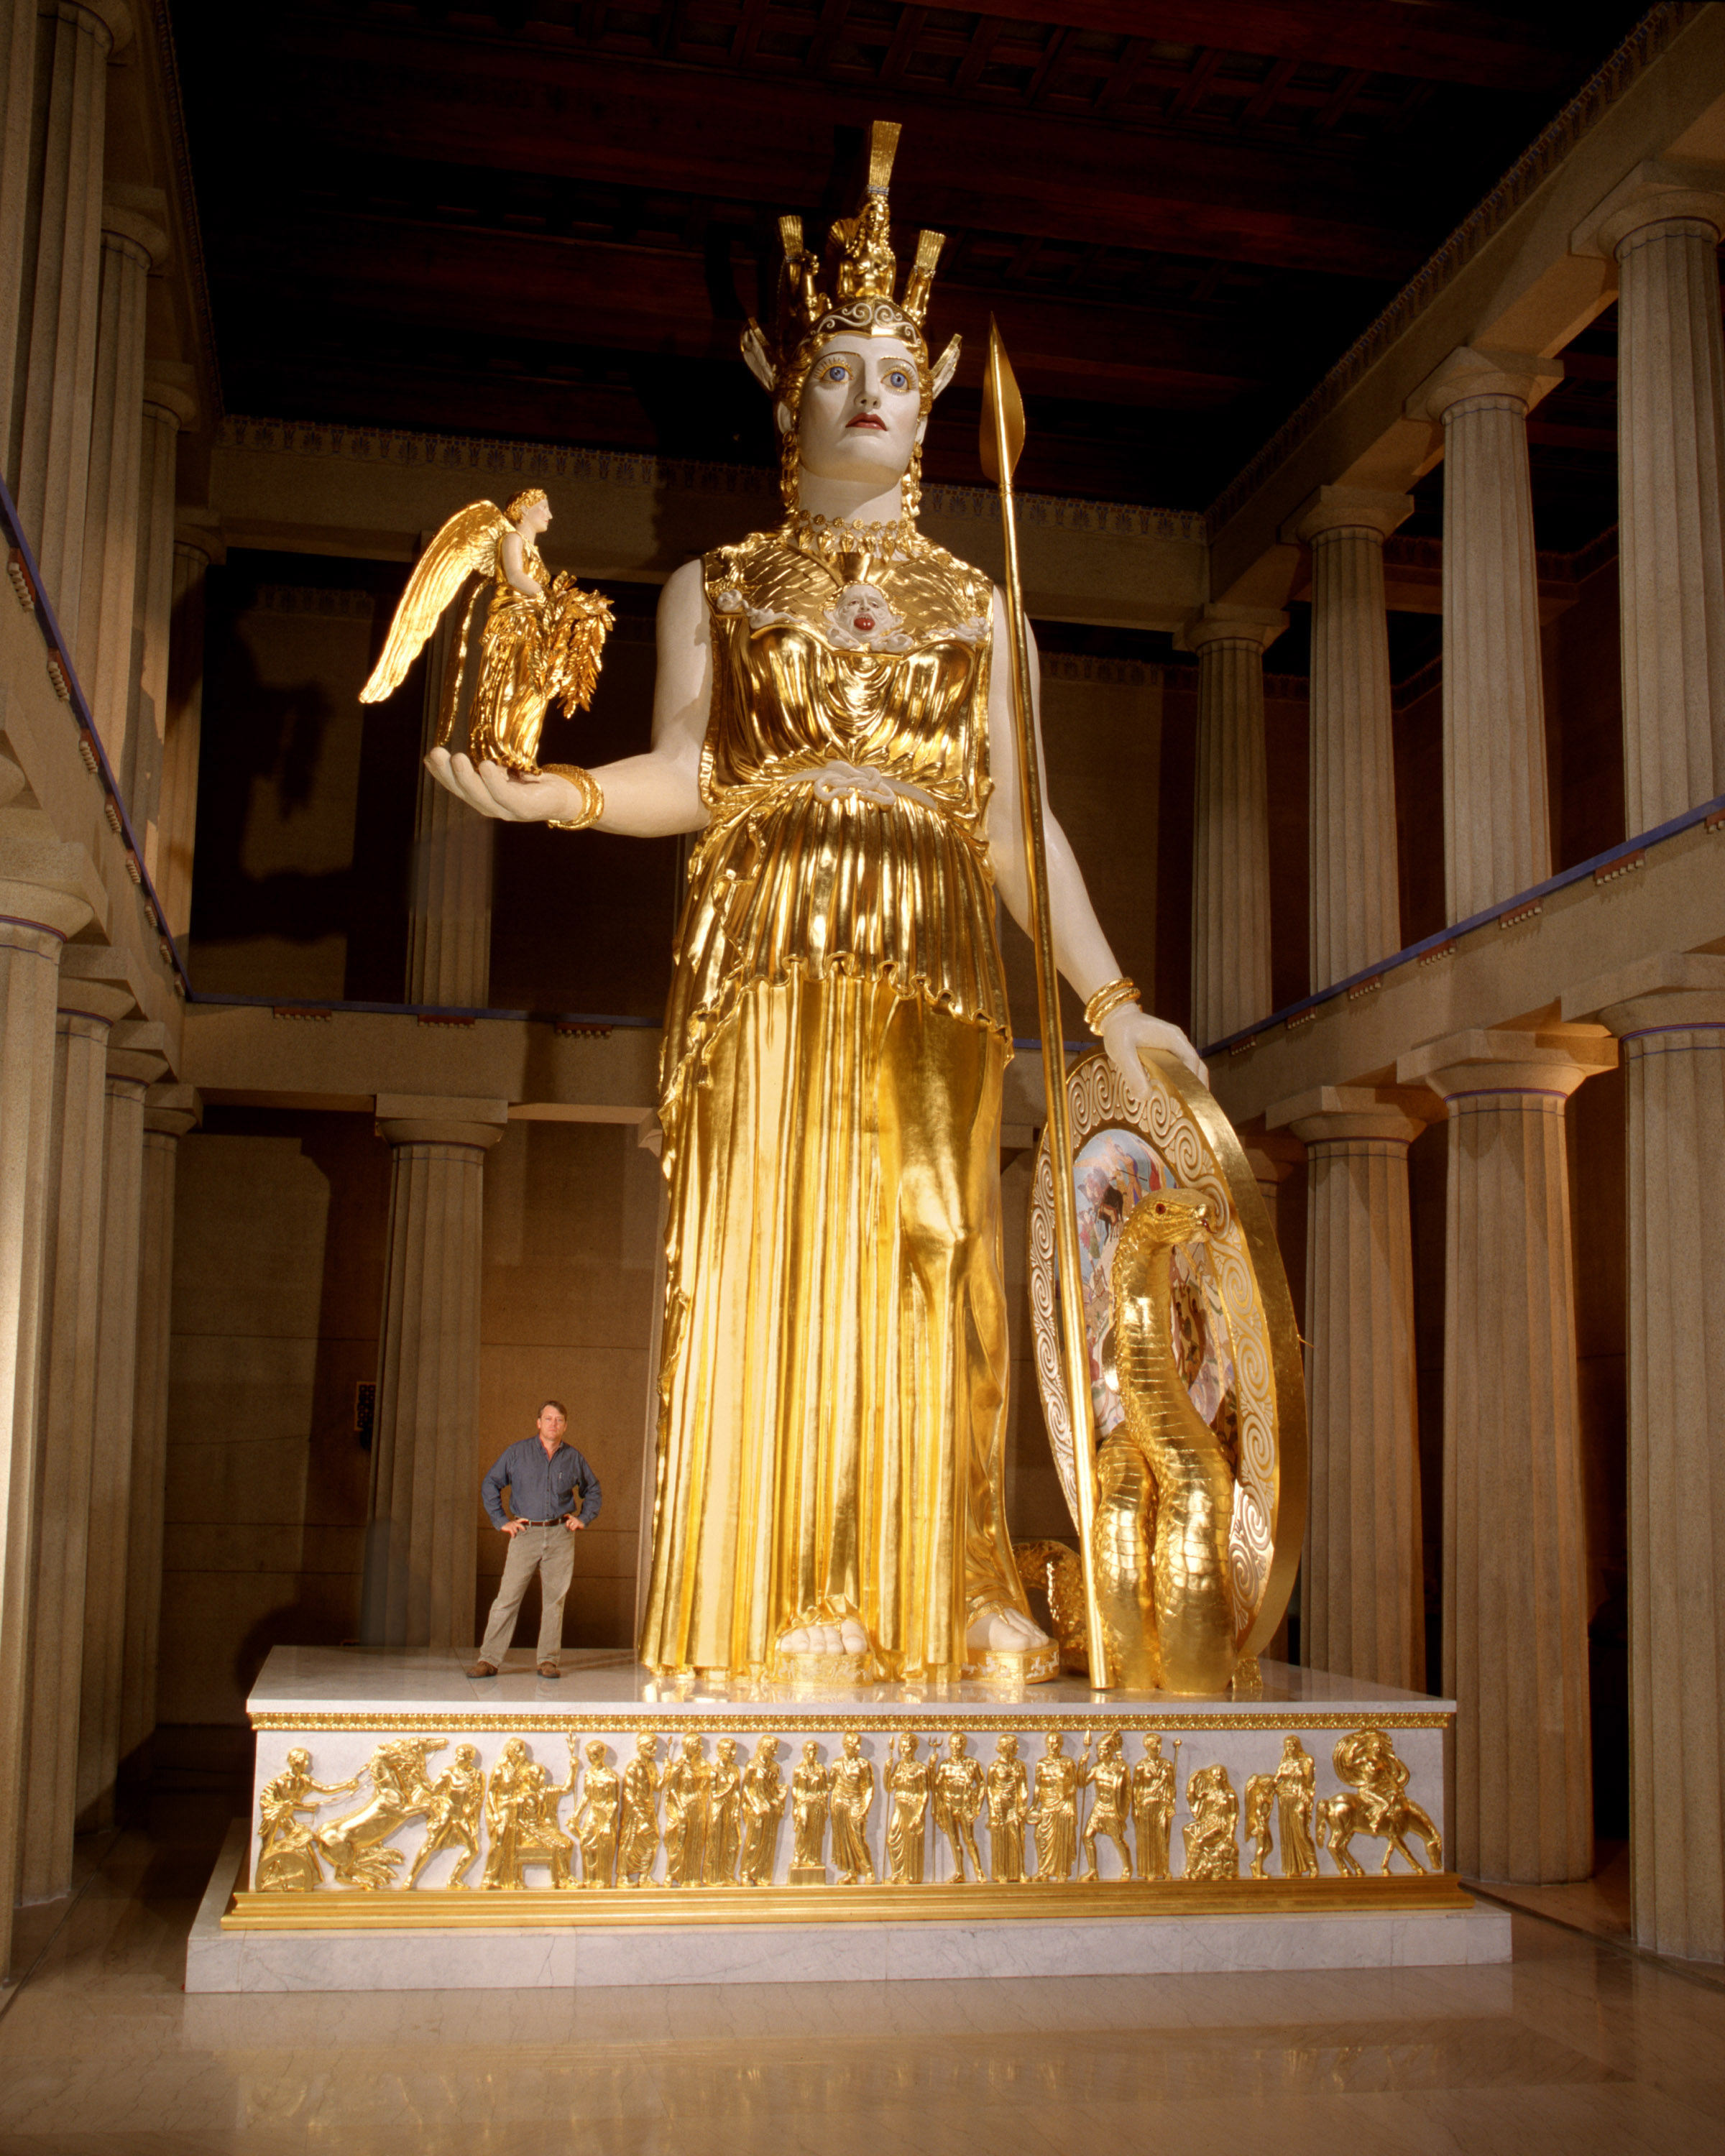 https://upload.wikimedia.org/wikipedia/commons/0/02/Athena_Parthenos_LeQuire.jpg